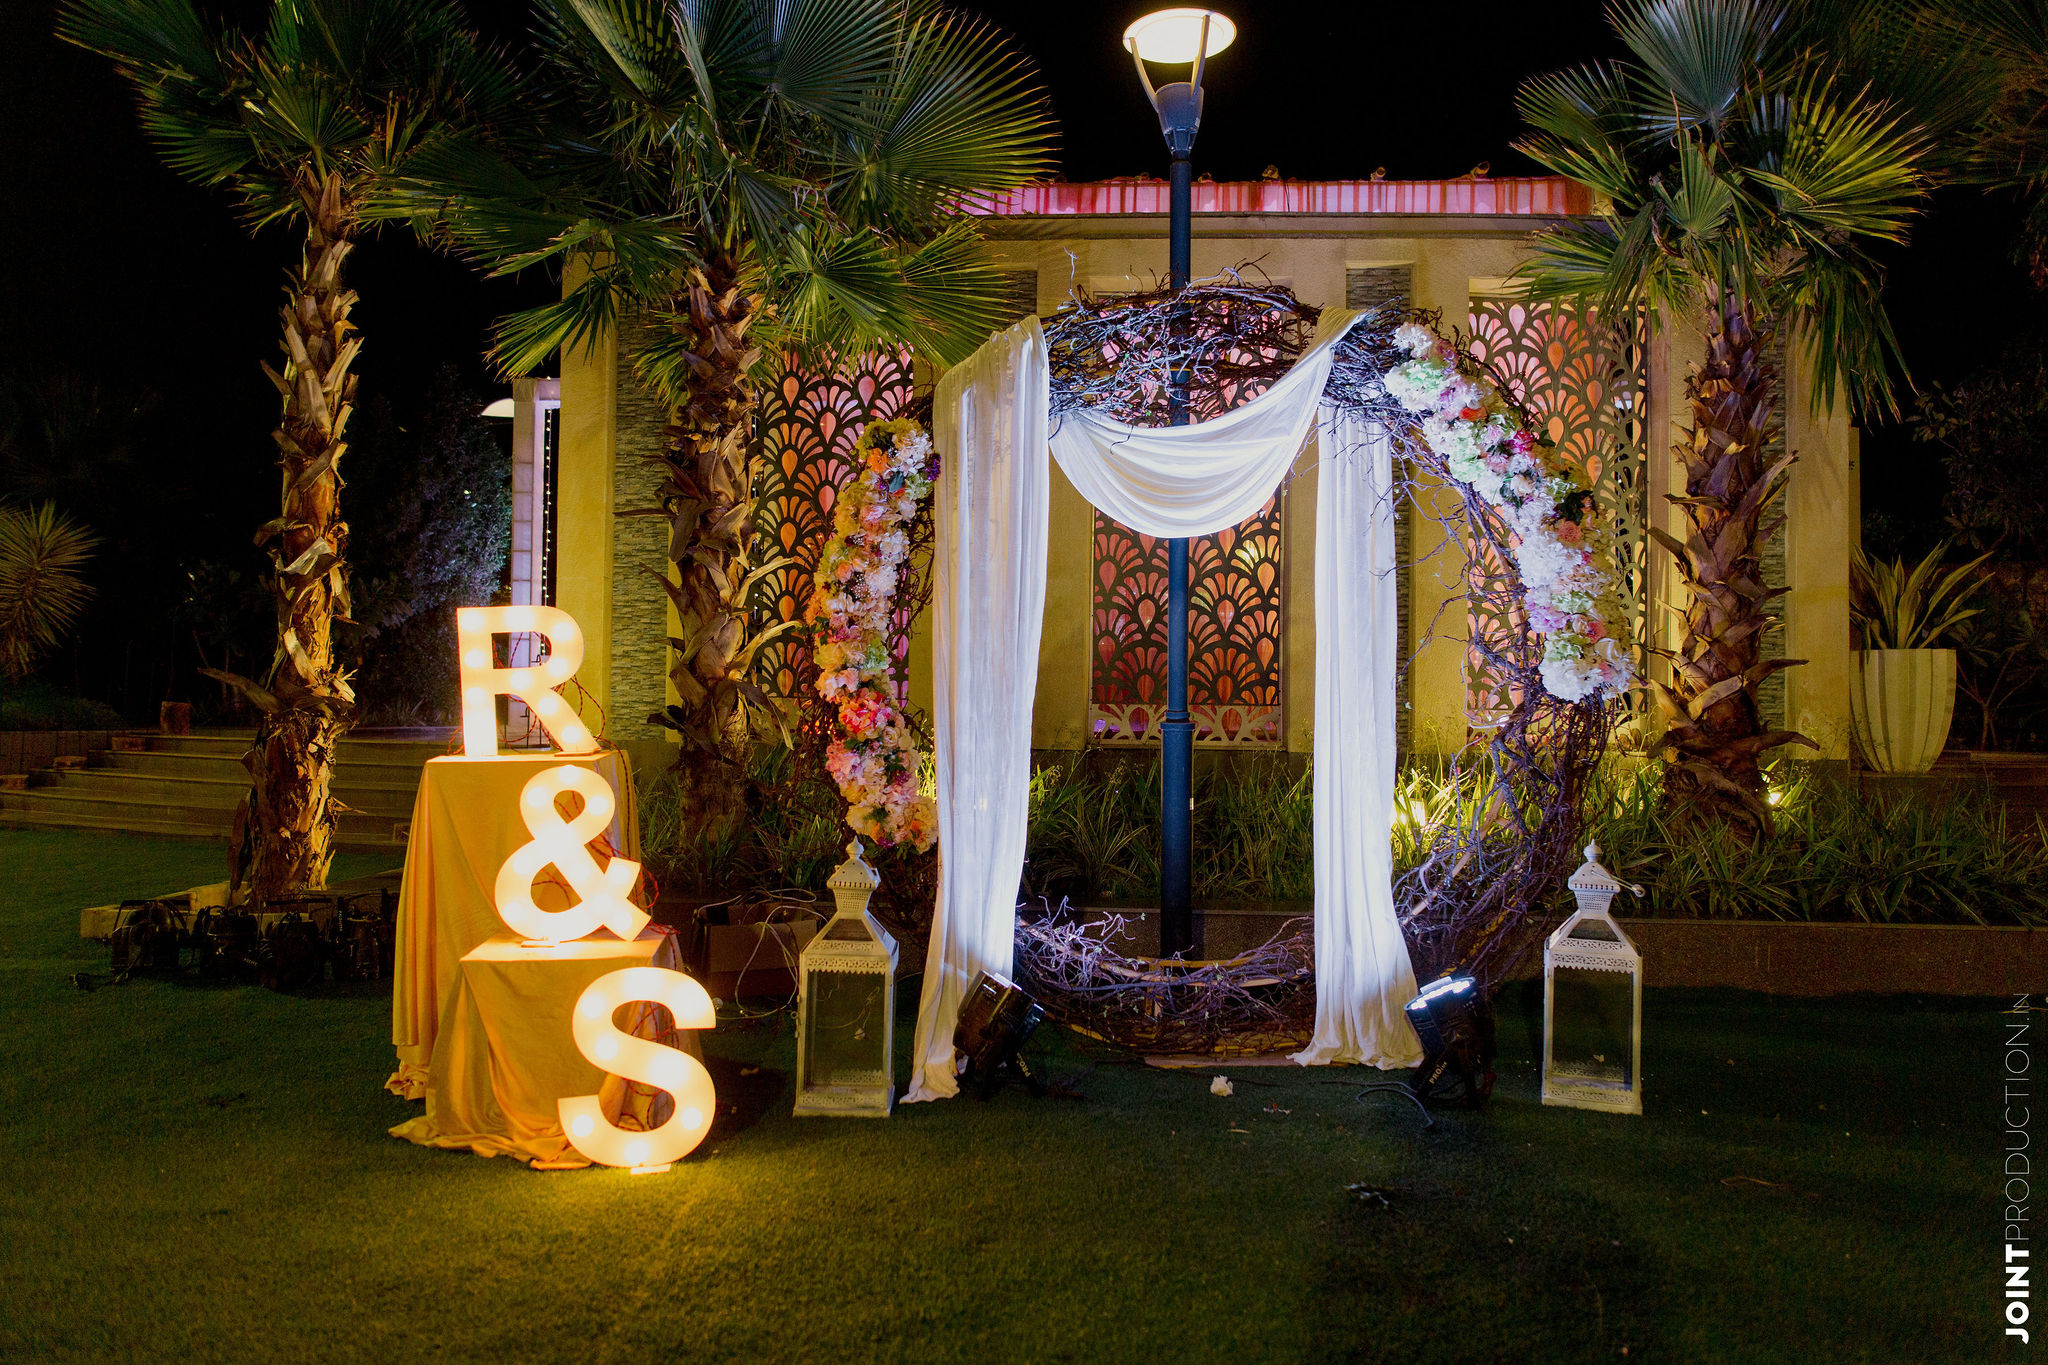 engagement decor with couple's intials